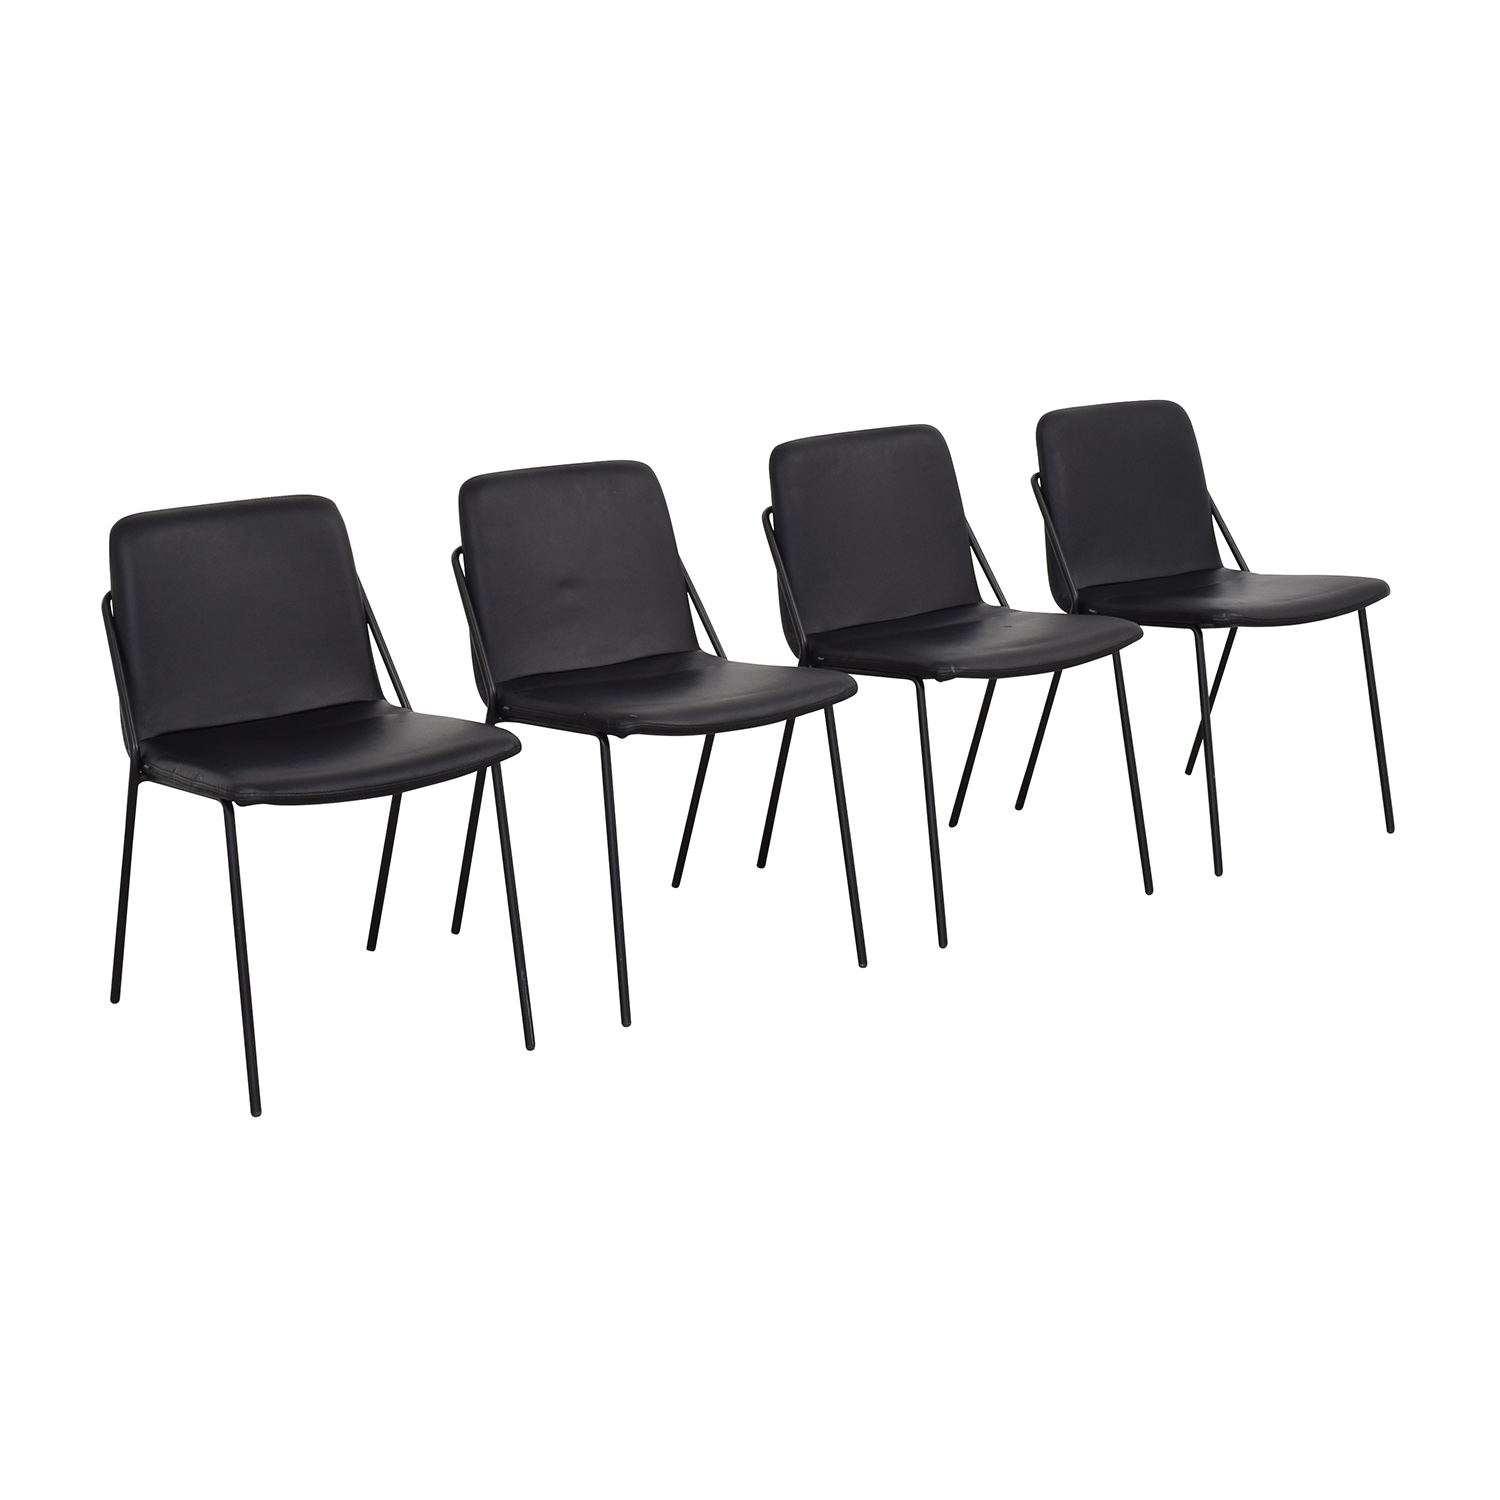 buy m.a.d. Black Sling Upholstered Chairs m.a.d. Chairs